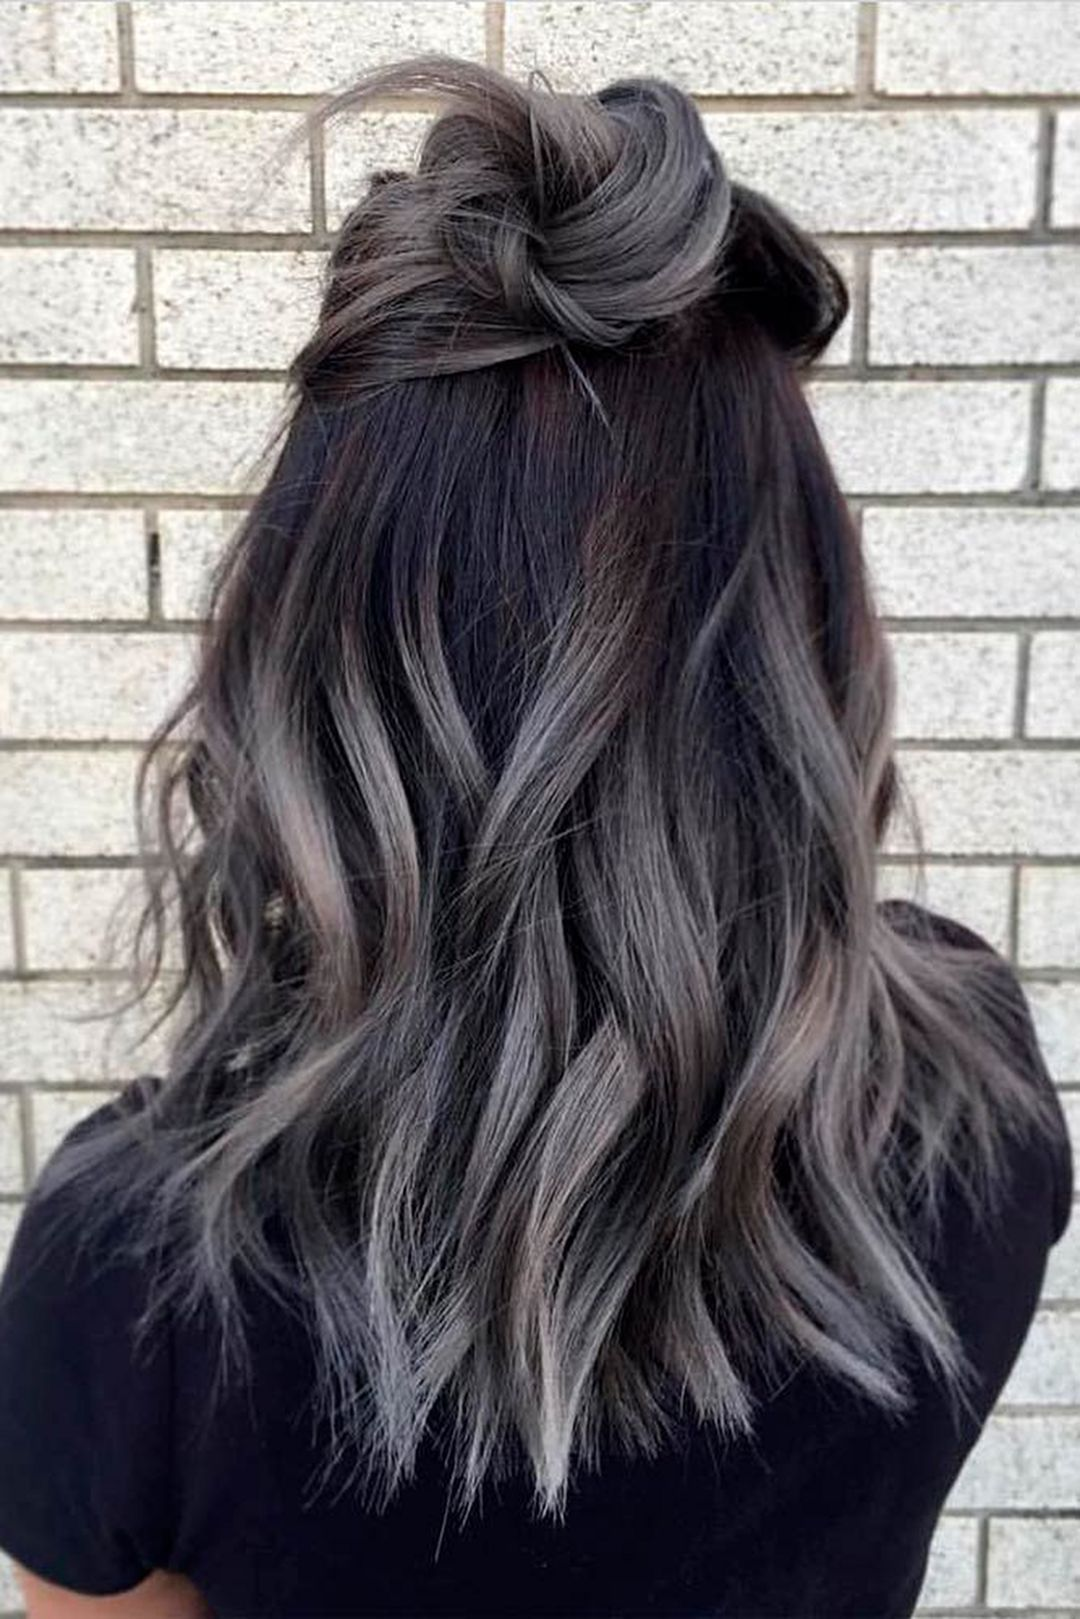 15 Amazing Dark Ombre Hair Color Ideas to Make You Look Trendy